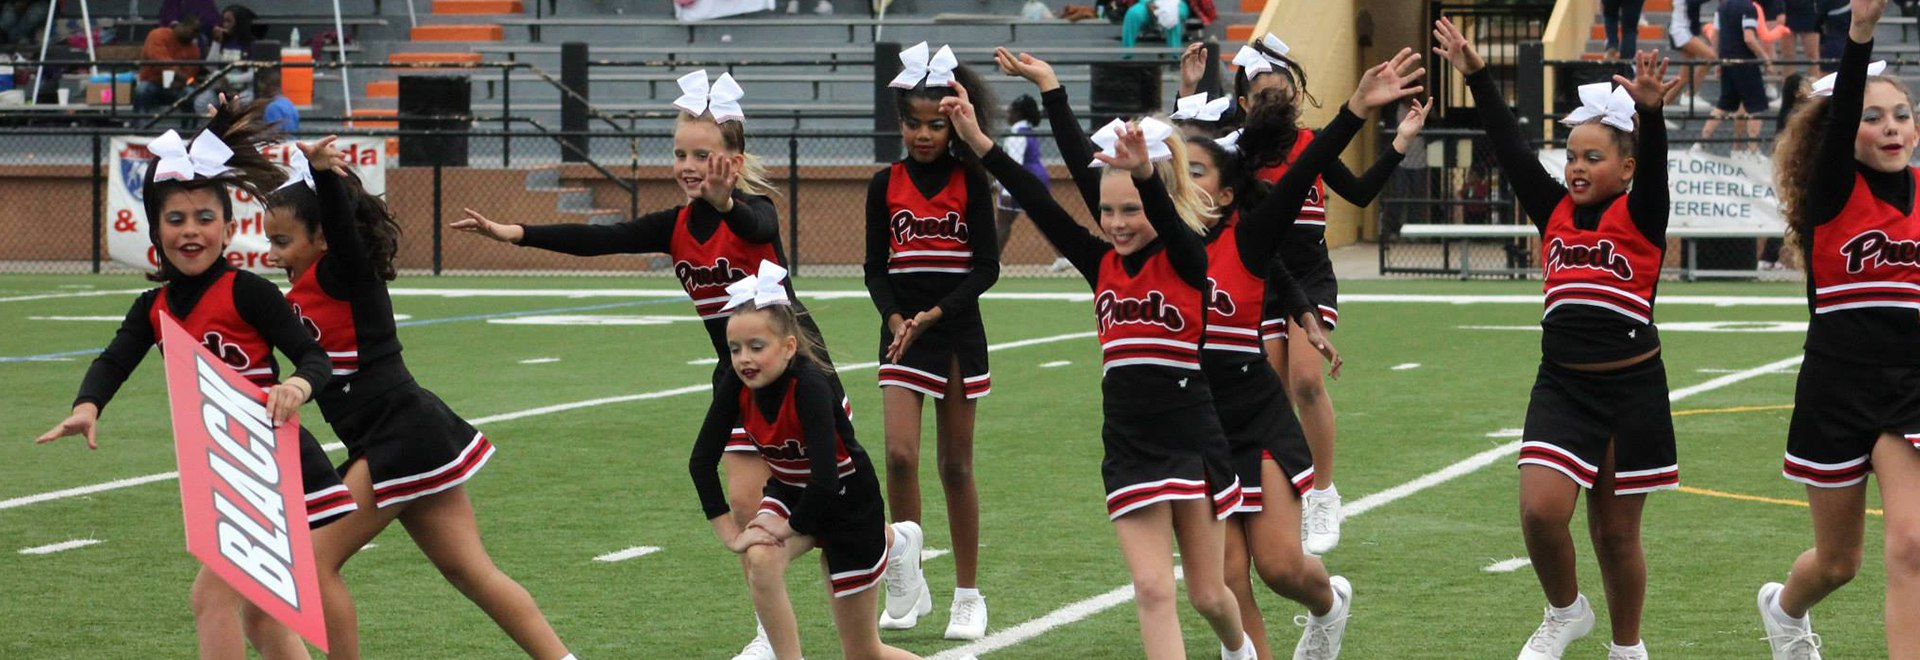 East Orlando Junior Predators Youth Cheerleading